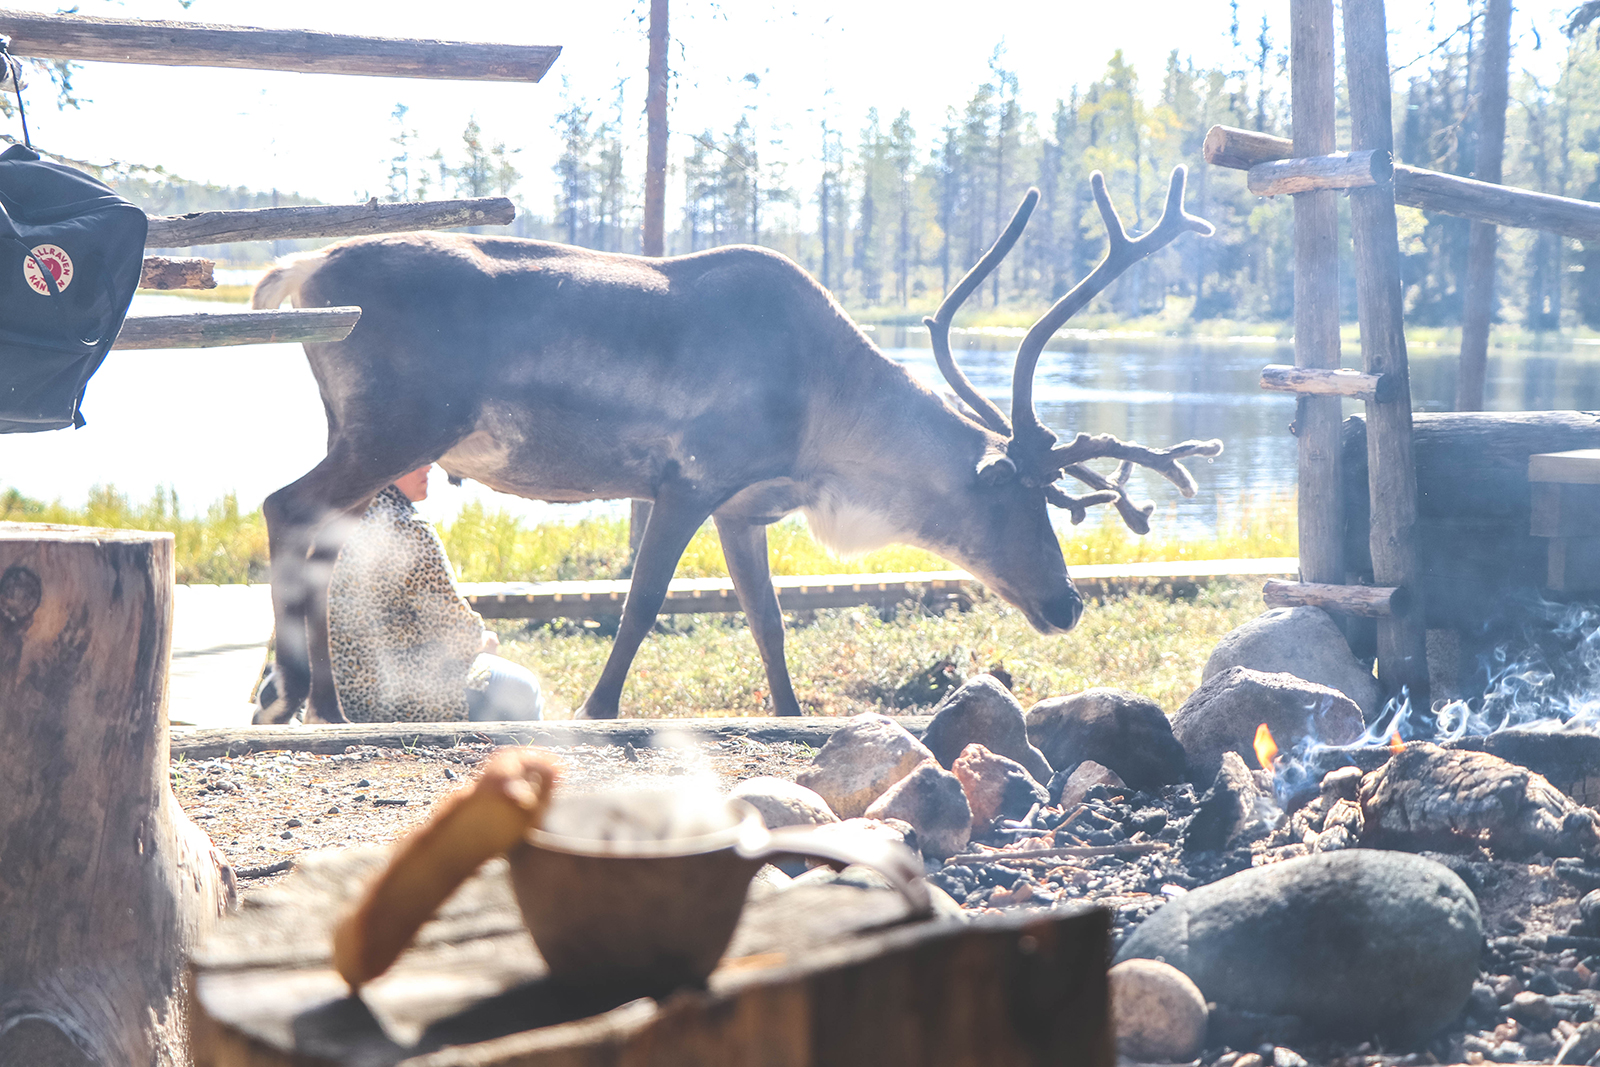 Rendieren spotten in Fins Lapland